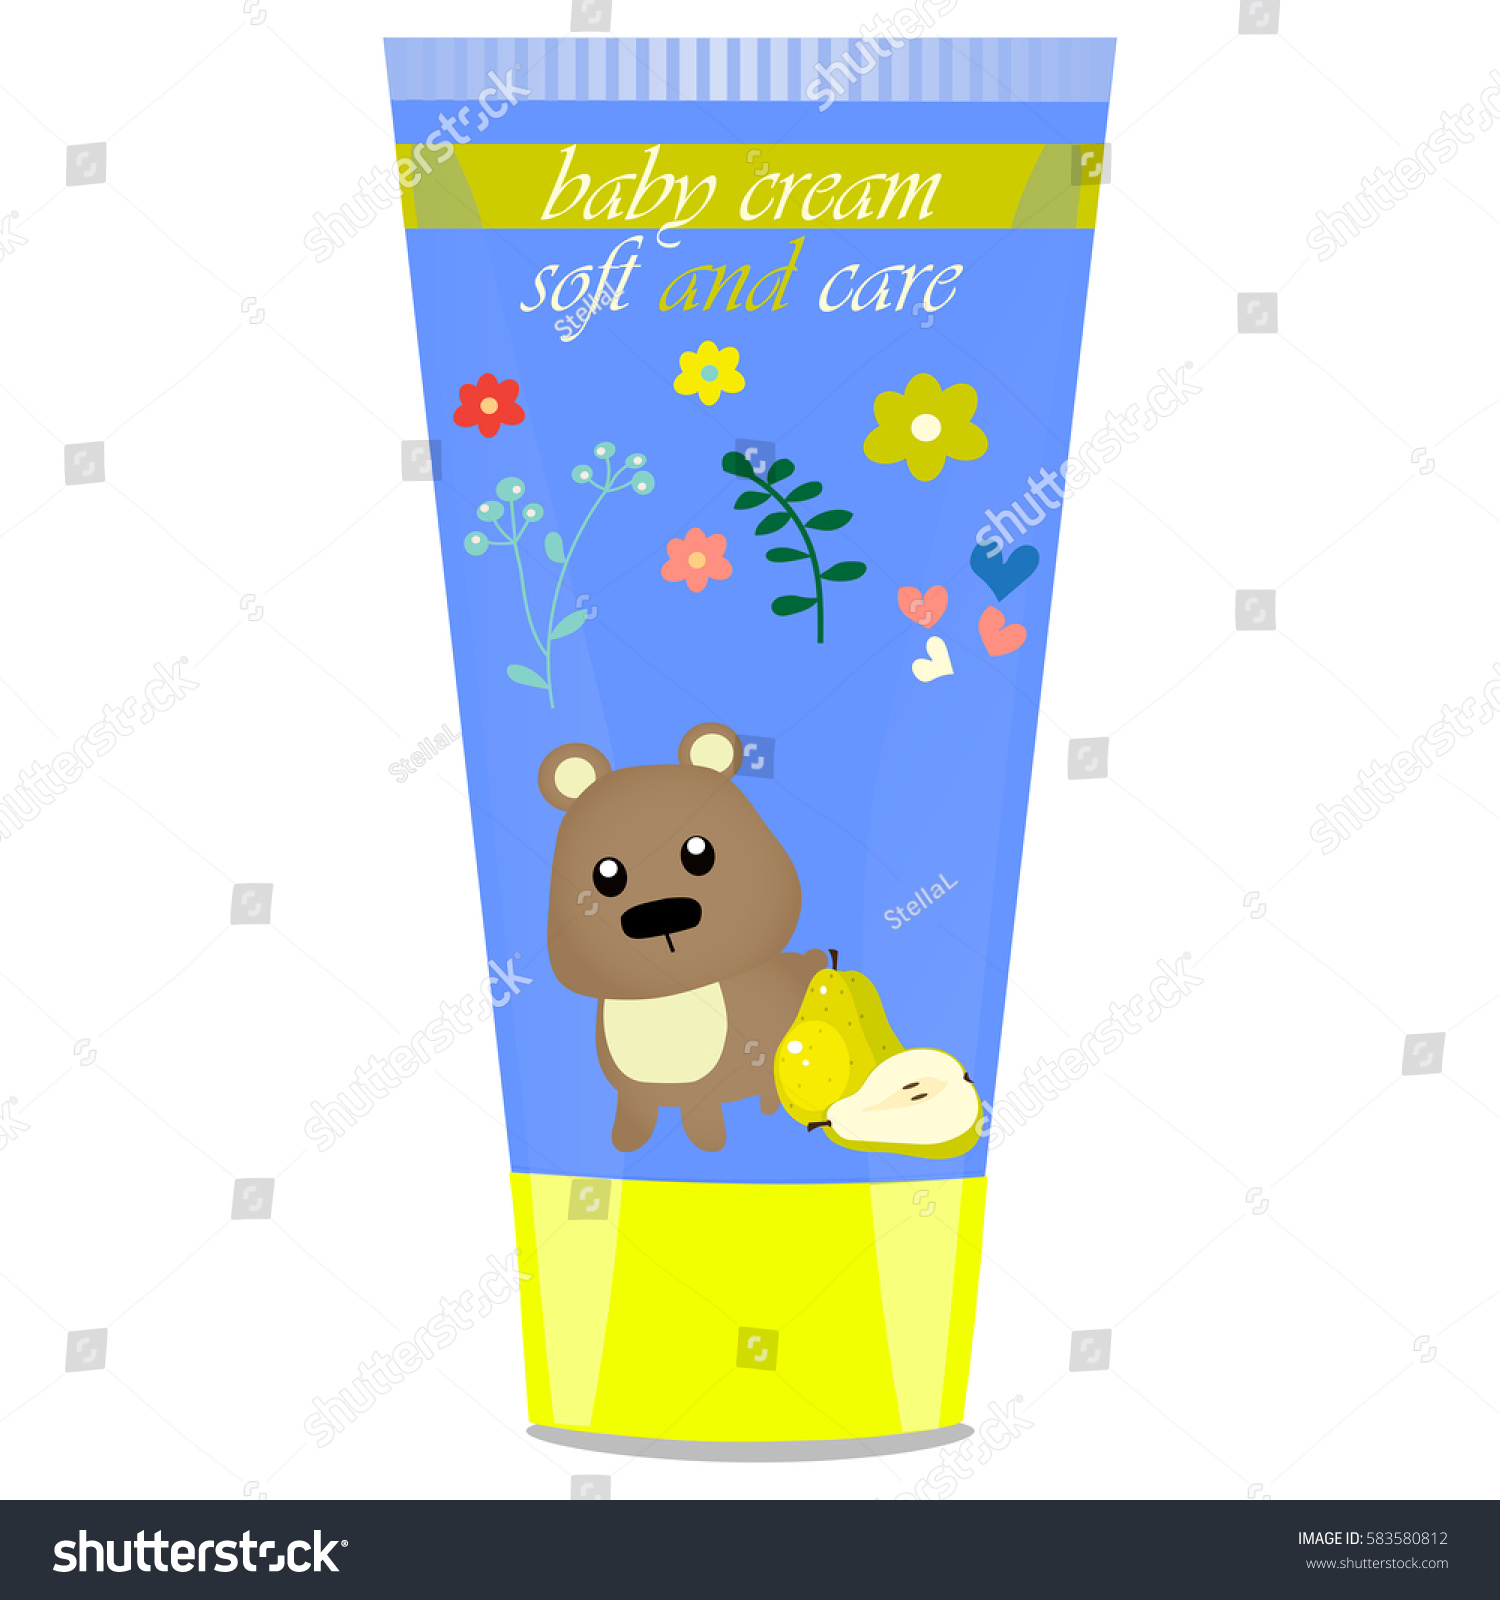 High quality original trendy vector Baby cream tube with kids design and  bear illustration